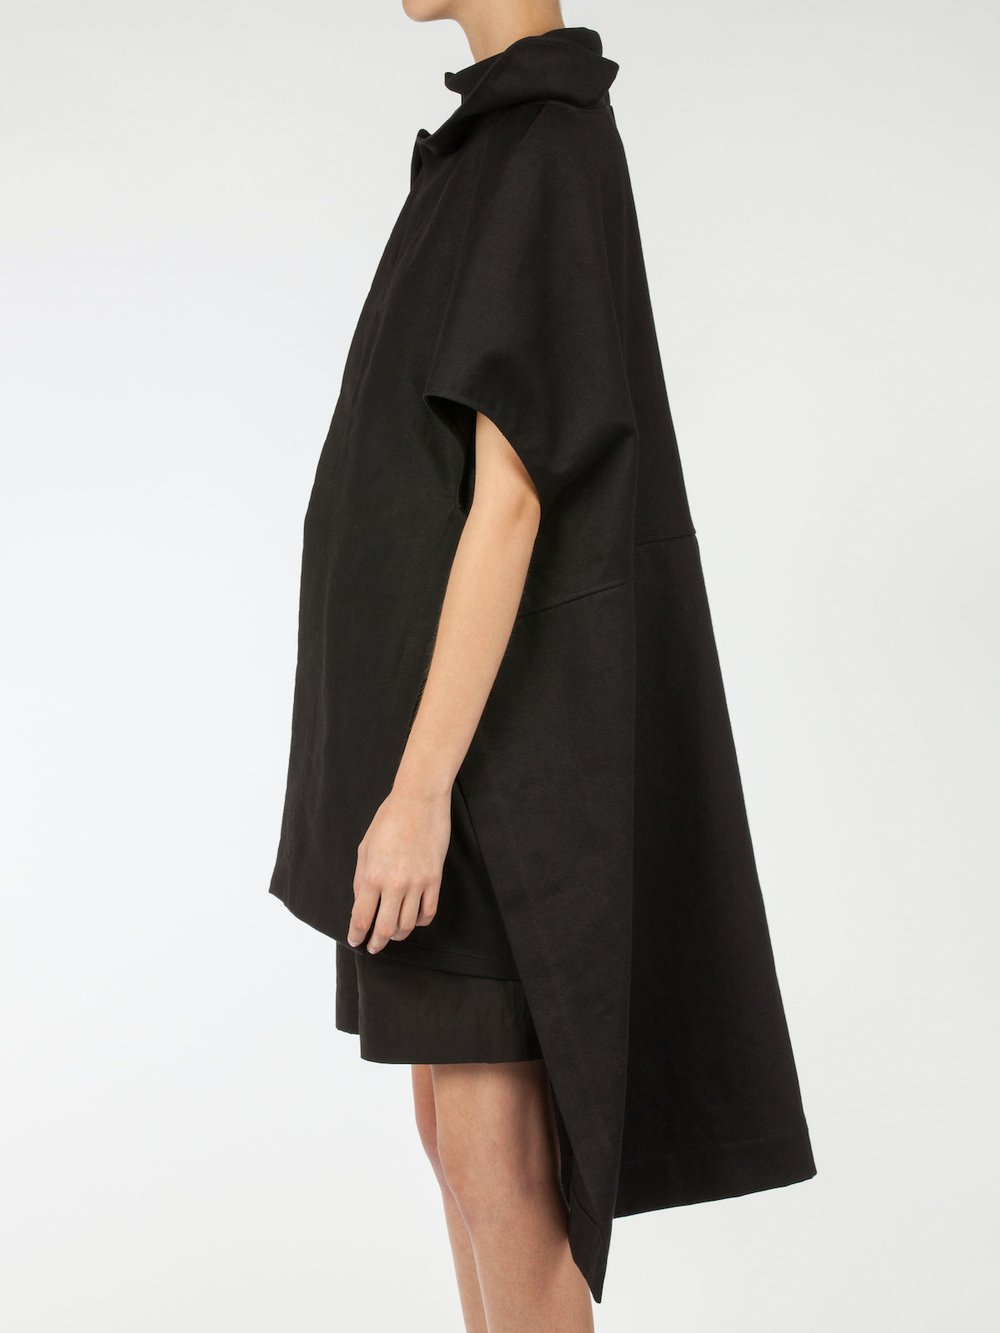 RICK OWENS - SPATHE TRENCH